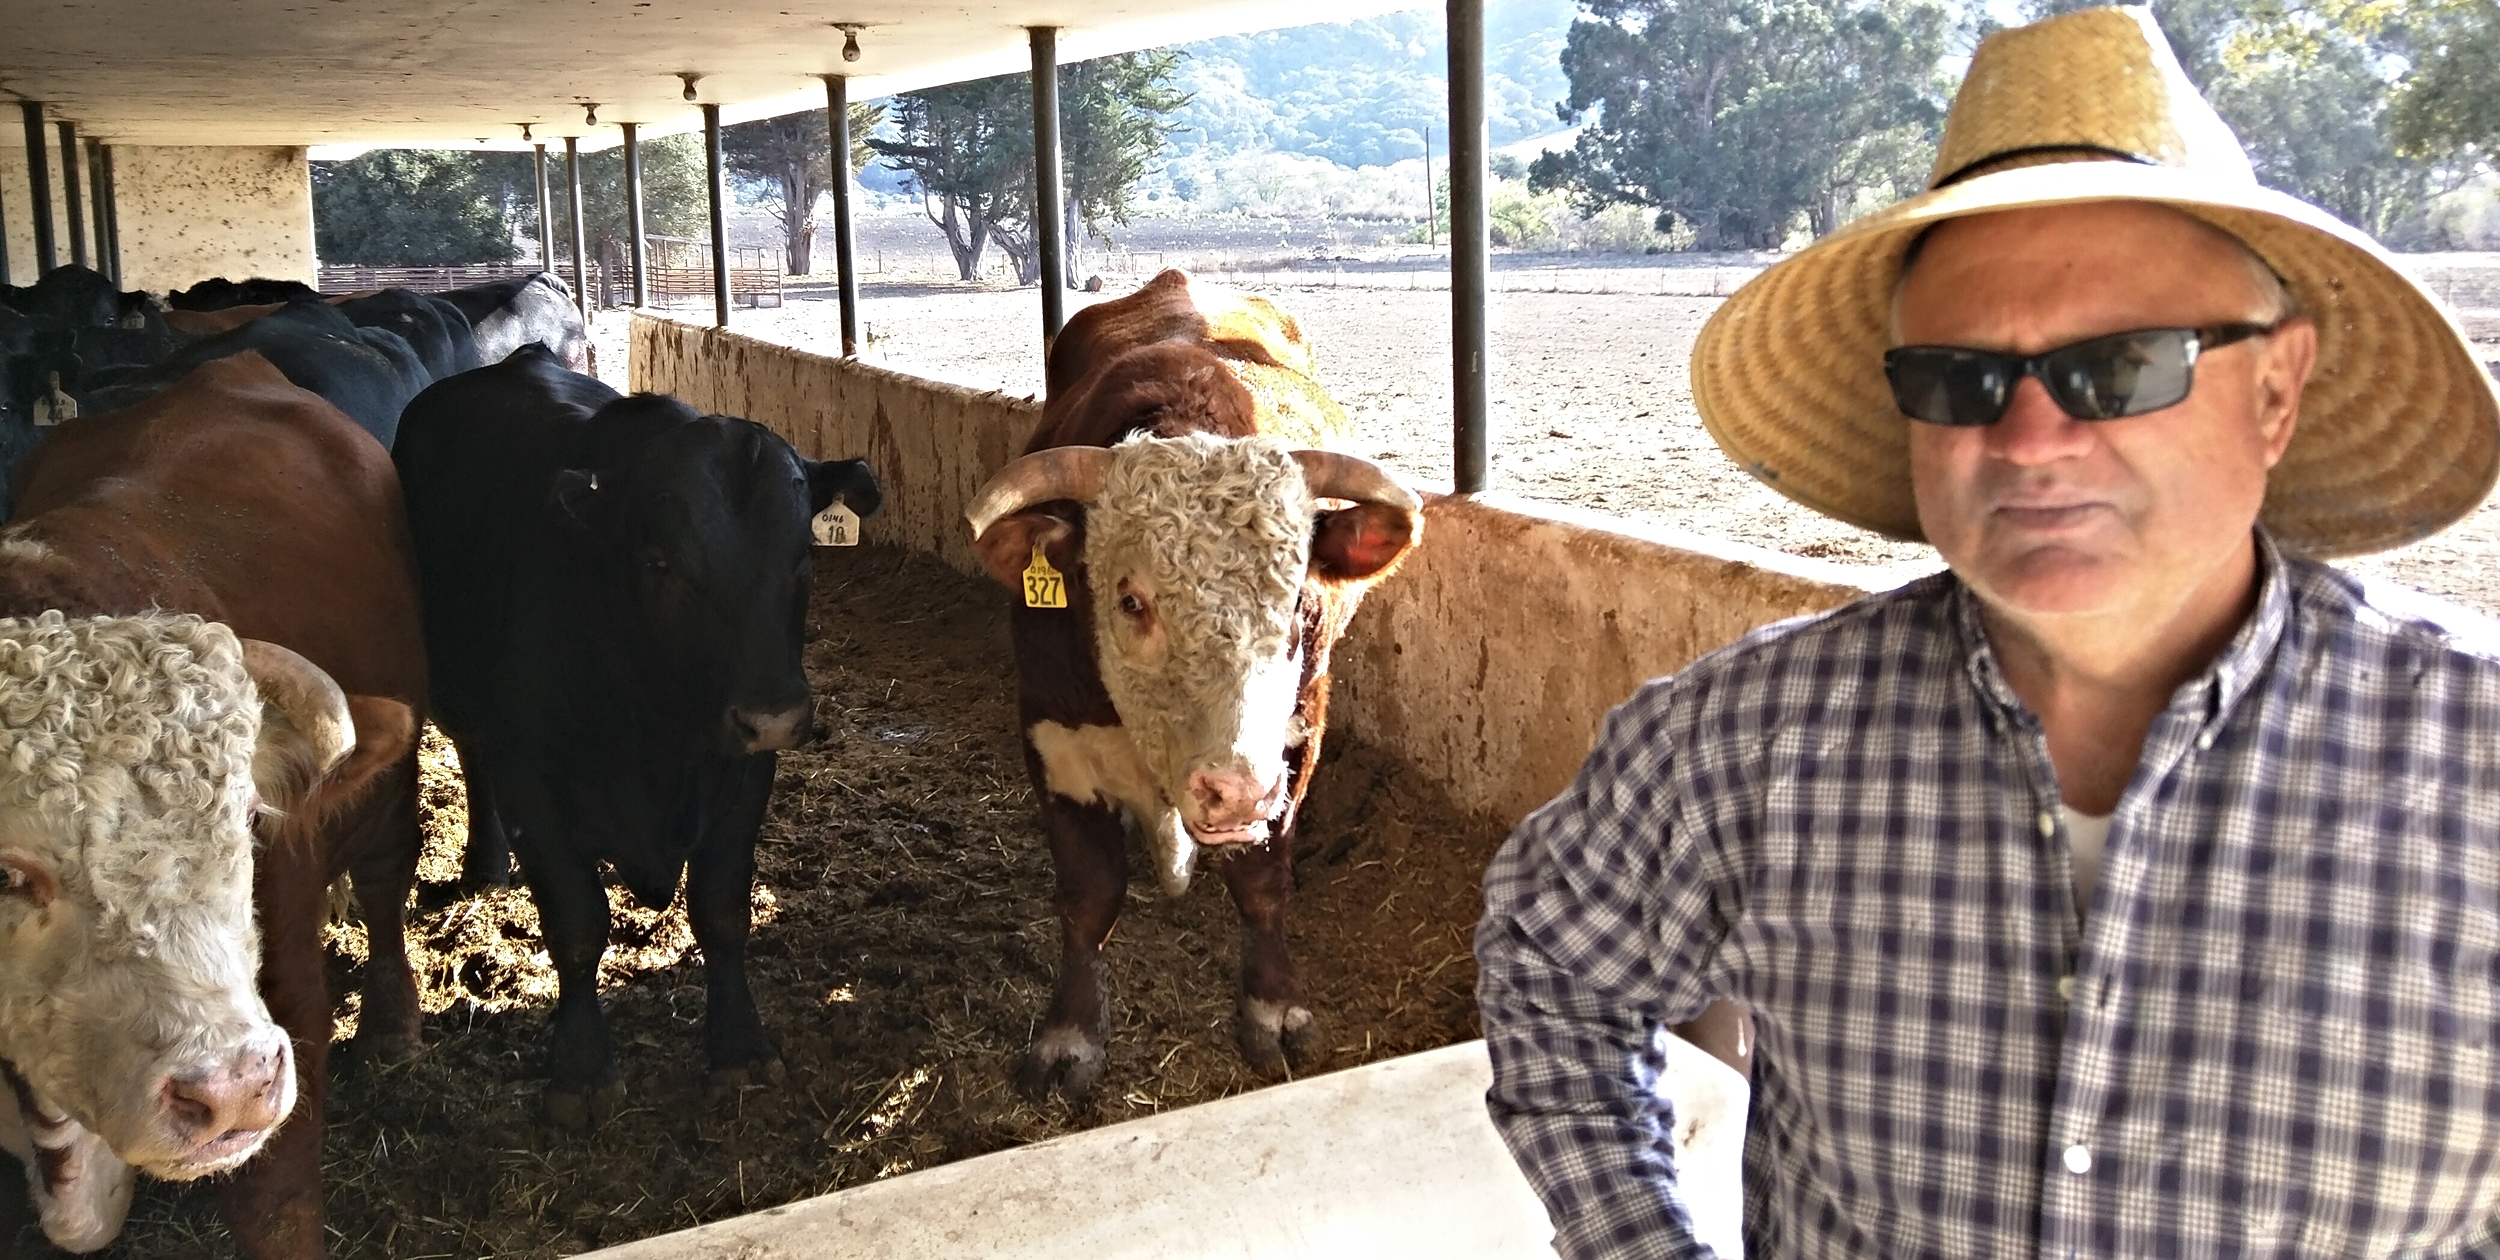 Hank Pitcher with the bulls at Rancho San Julian, October 2015